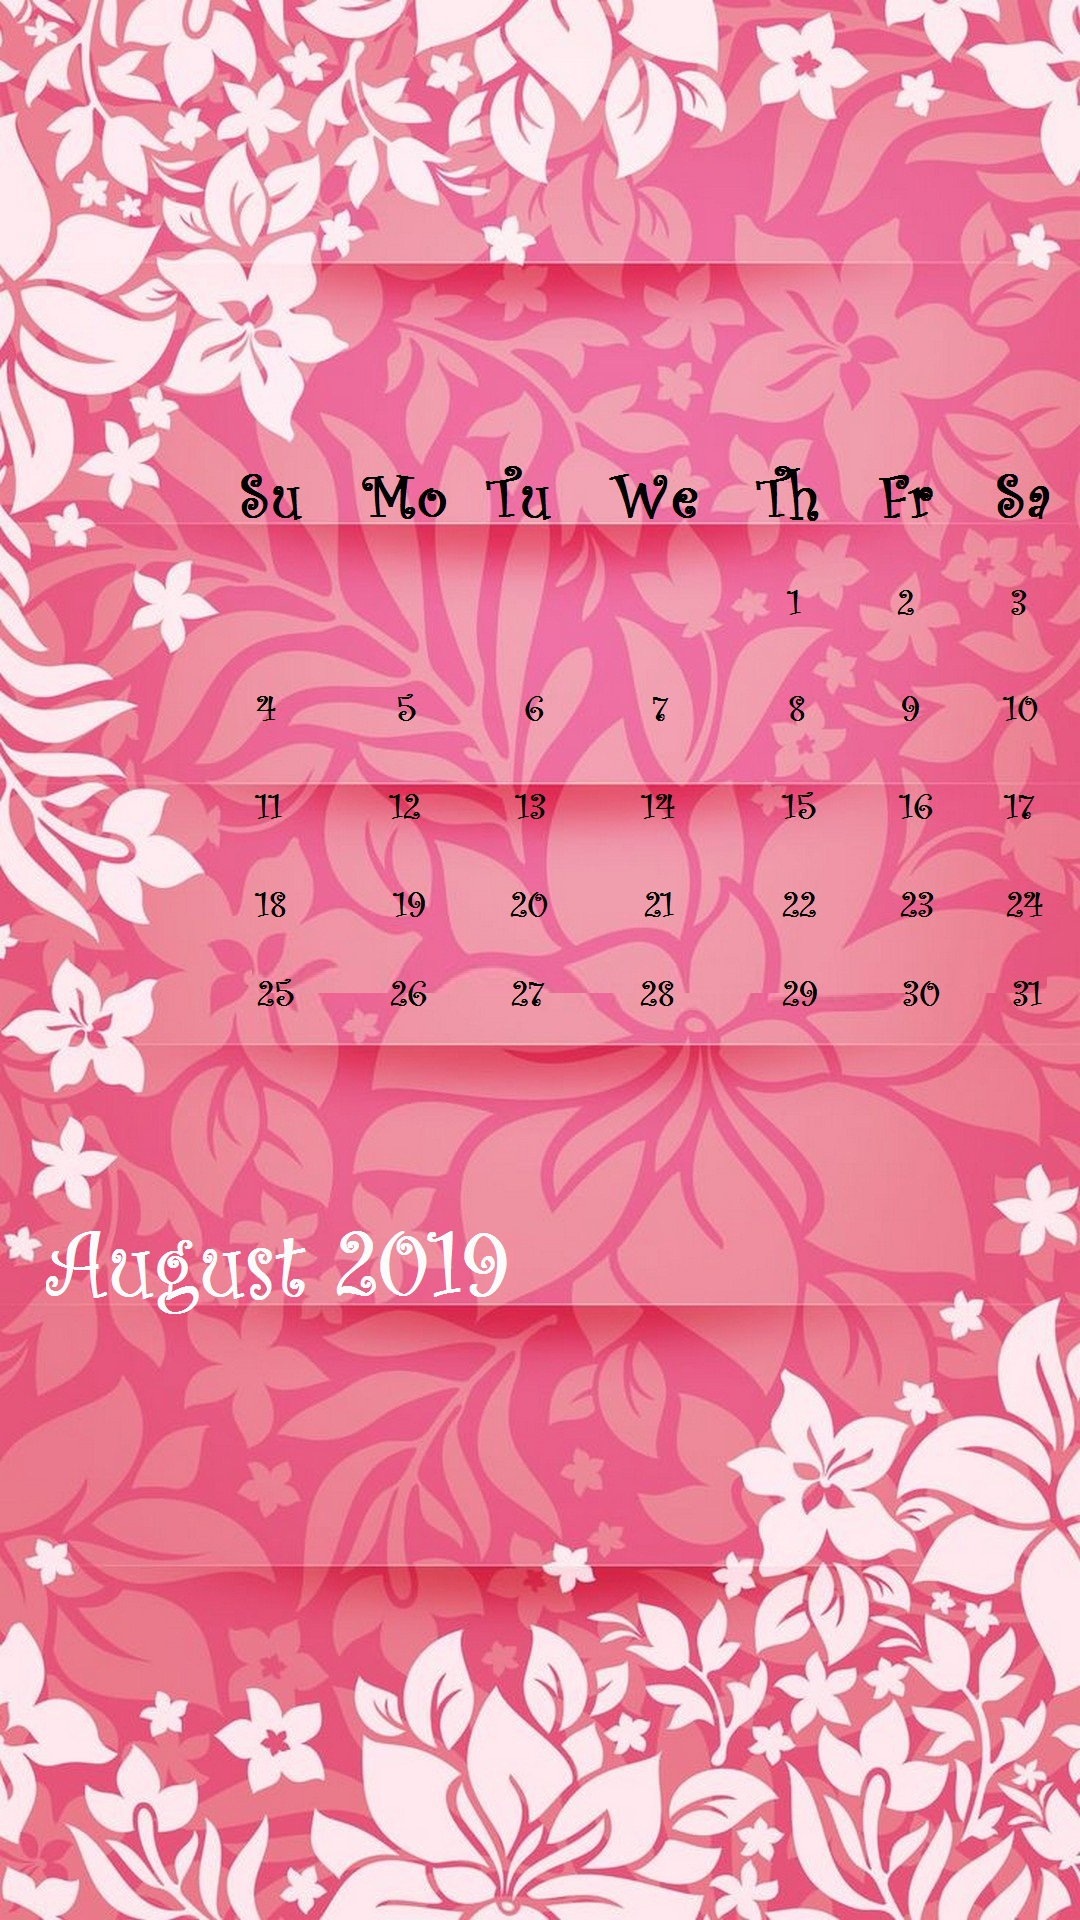 Cute floral Design August 2019 iPhone Background